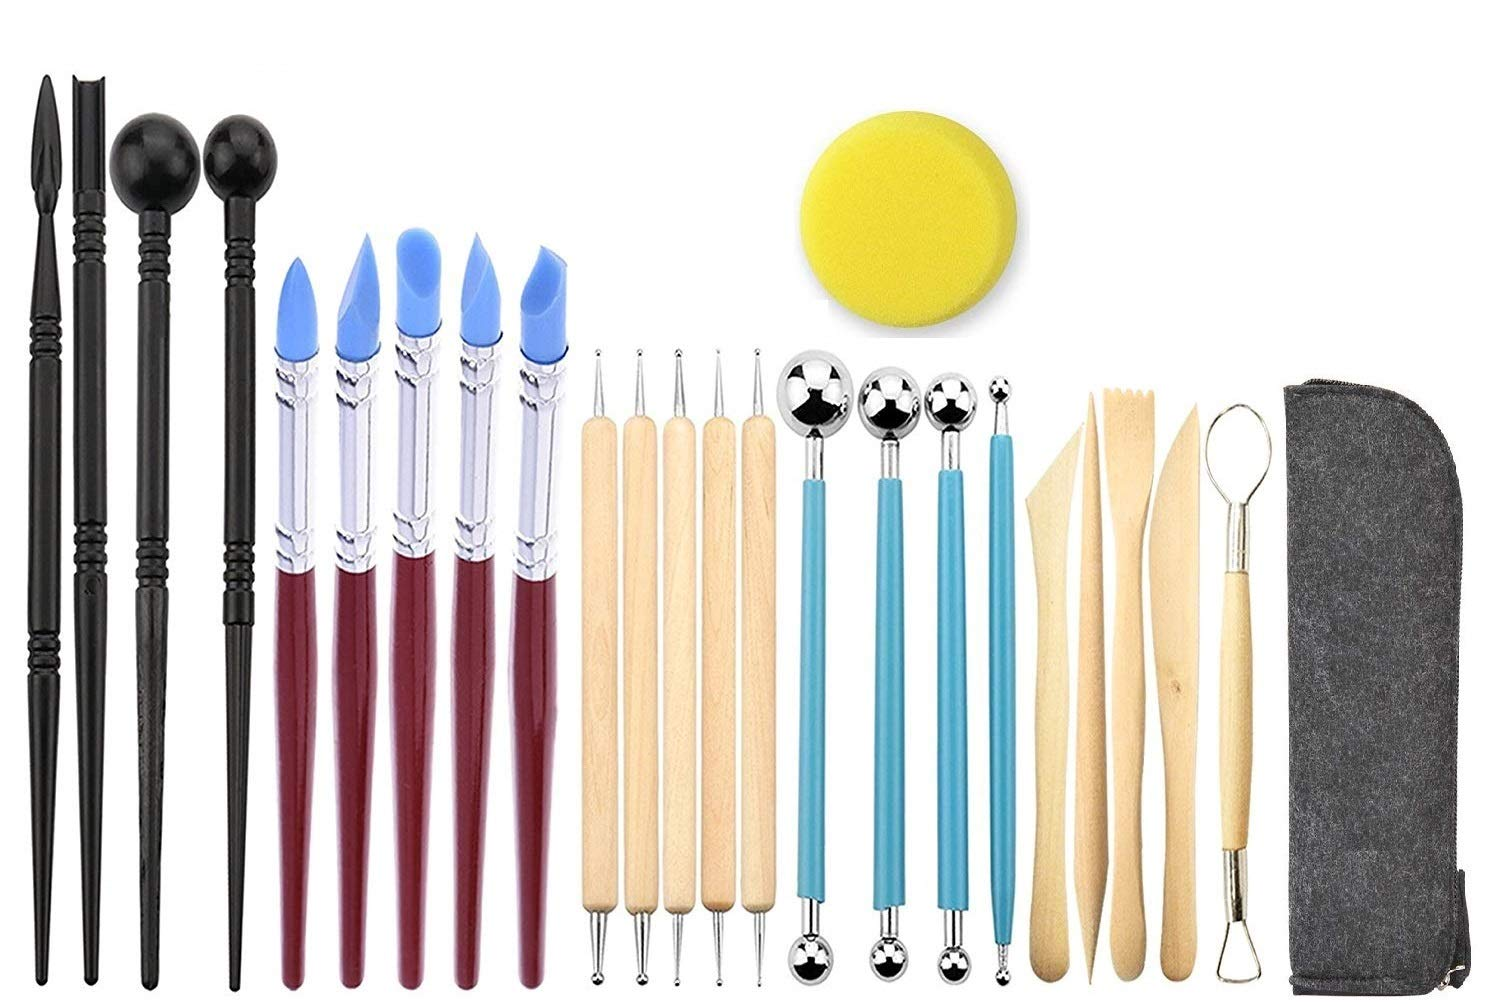 Ball Stylus Dotting Sculpting Kit - Jaybva Polymer Clay Sculptures Tools Rubber Tip Pens for Pottery Rock Painting Ceramics Doll Modeling Carving Embossing Paper Flowers 24pcs